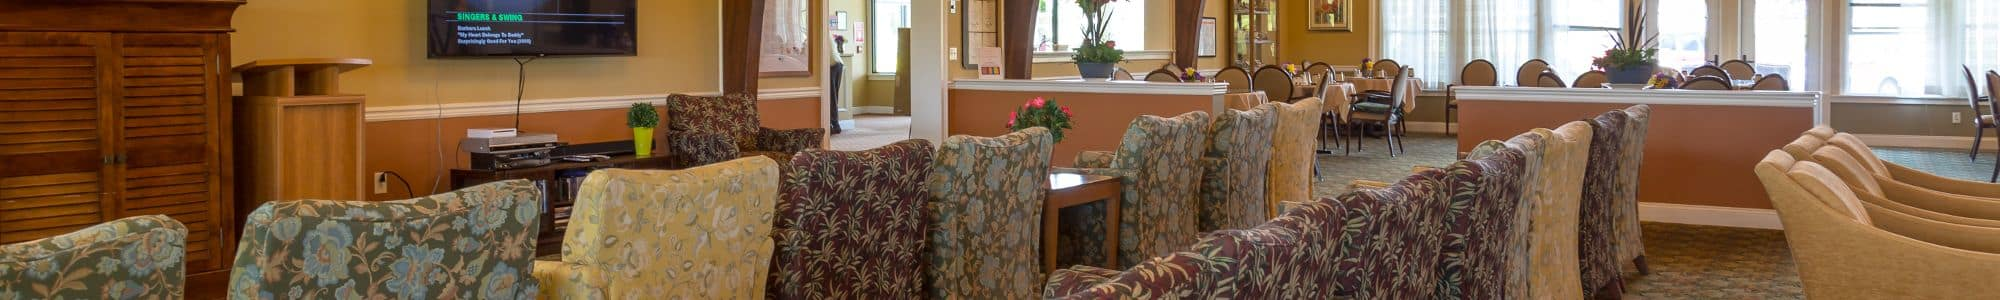 Read our privacy policy | Bentley Assisted Living at Branchville